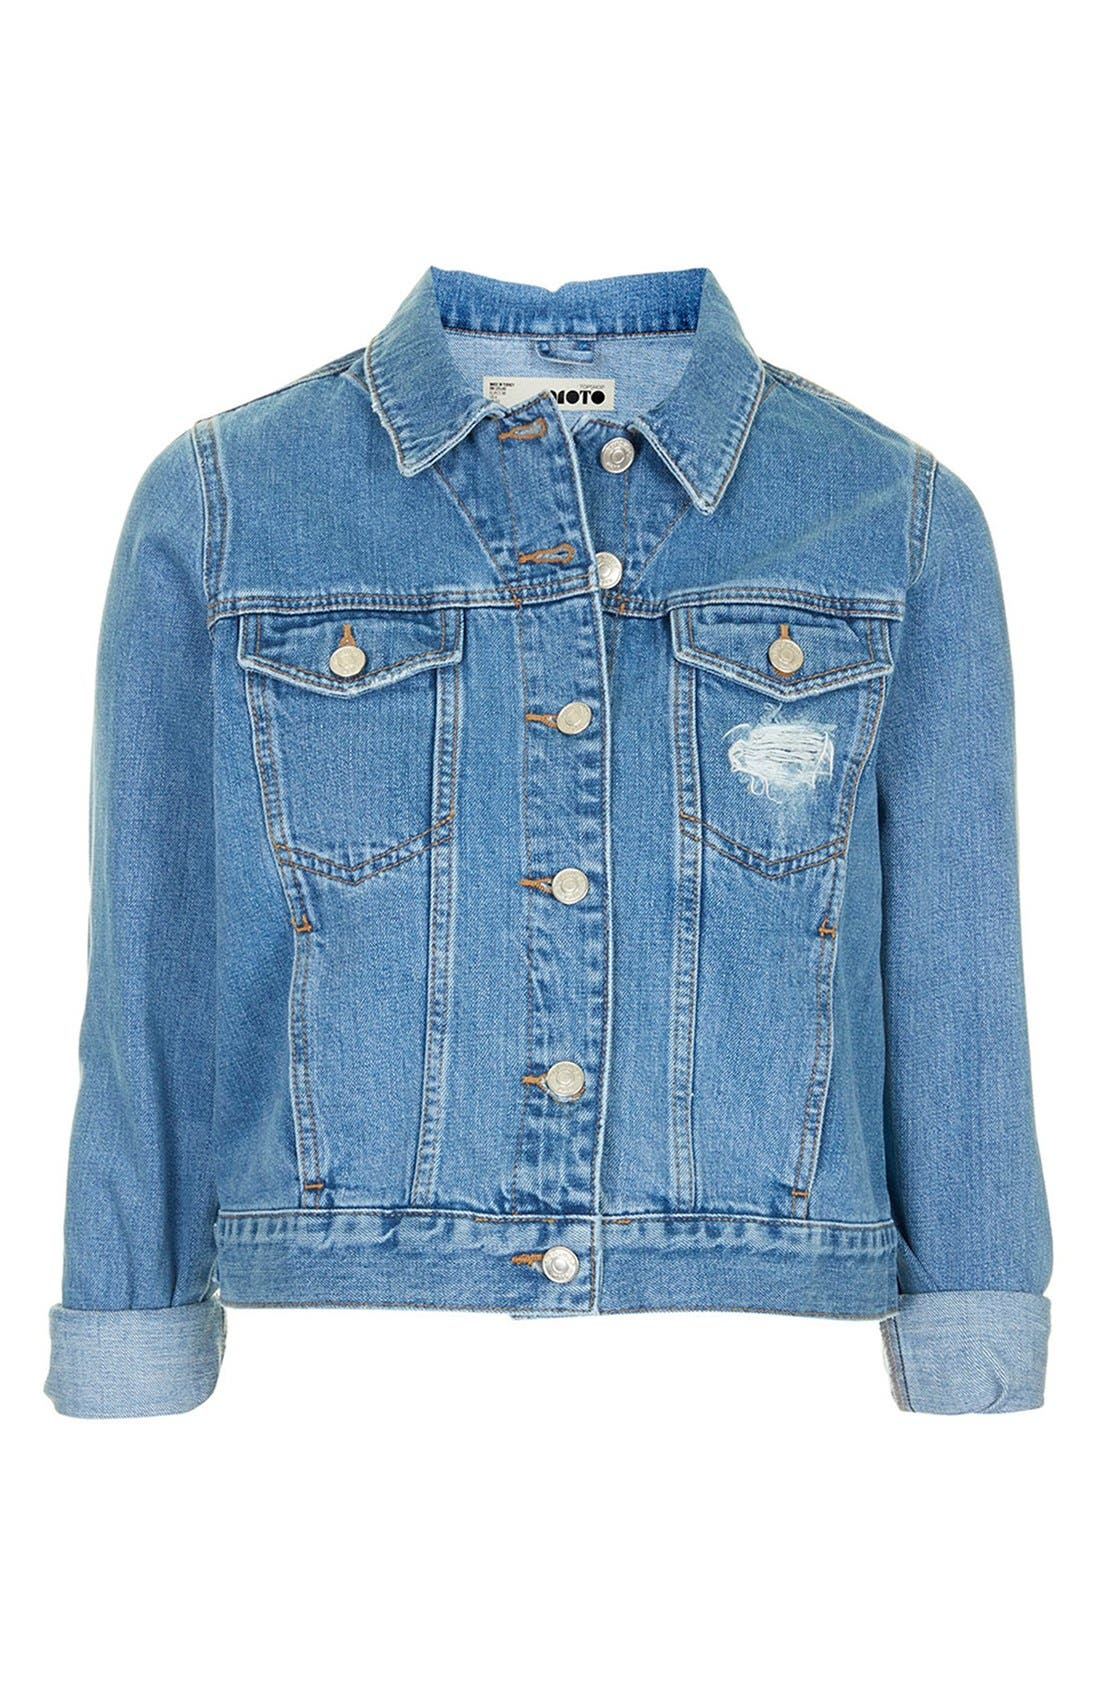 Alternate Image 3  - Topshop Moto 'Tilda' Denim Jacket